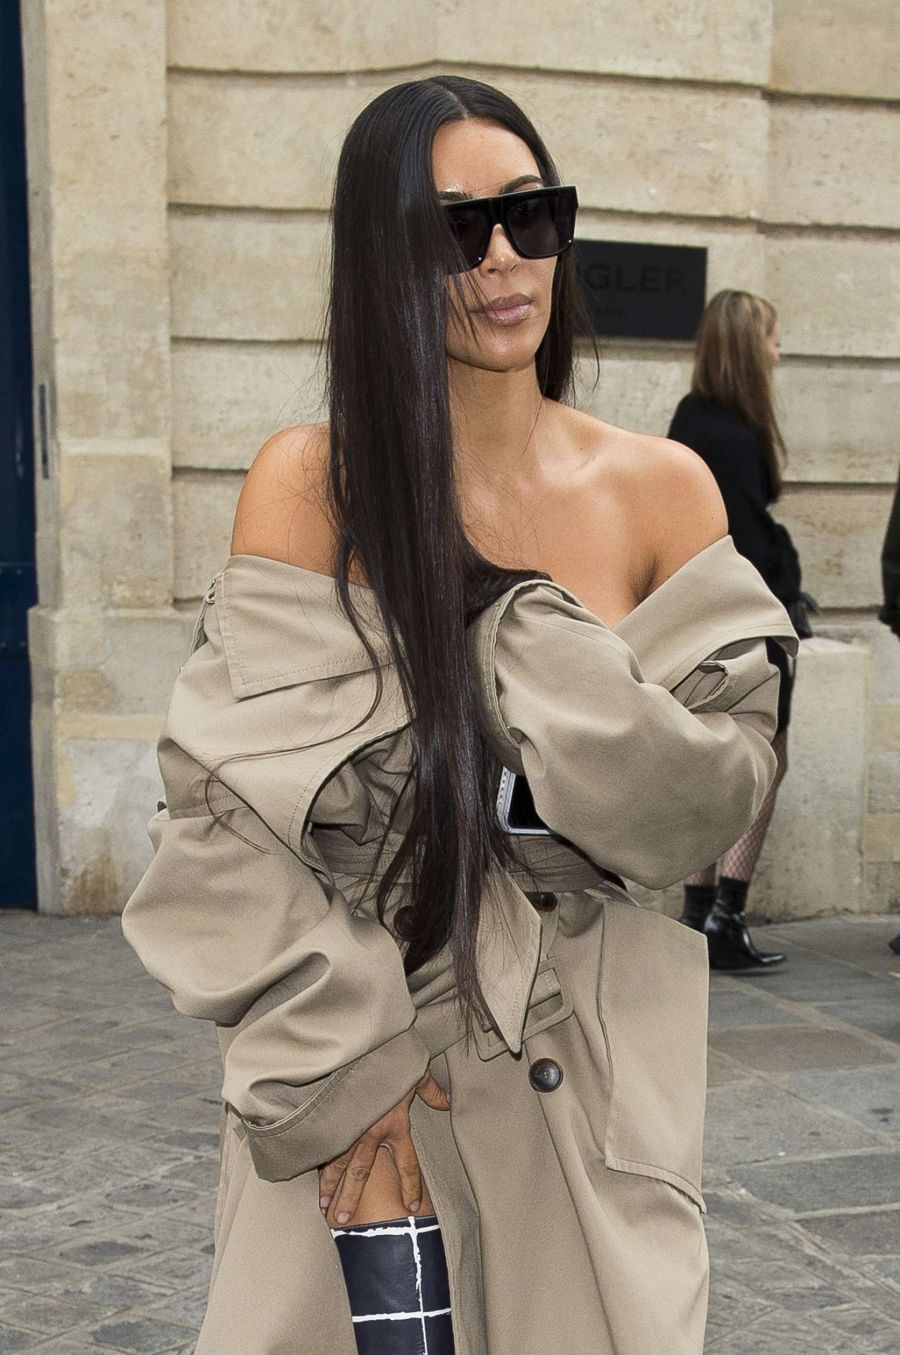 Kim Kardashian robbed at gunpoint, tied up